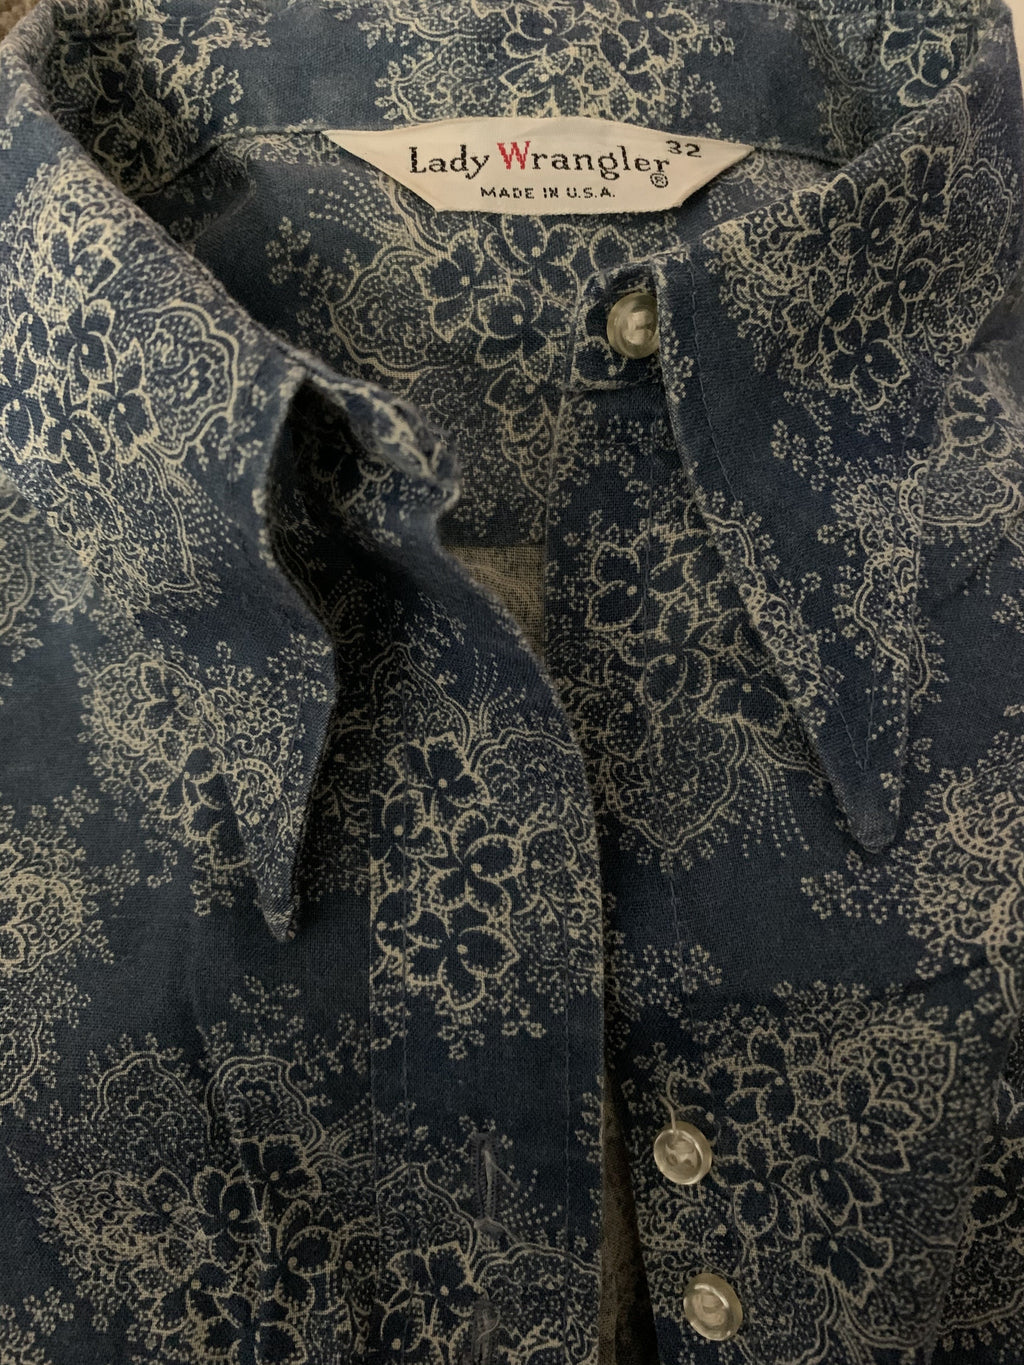 Vintage Lady Wrangler Button Up